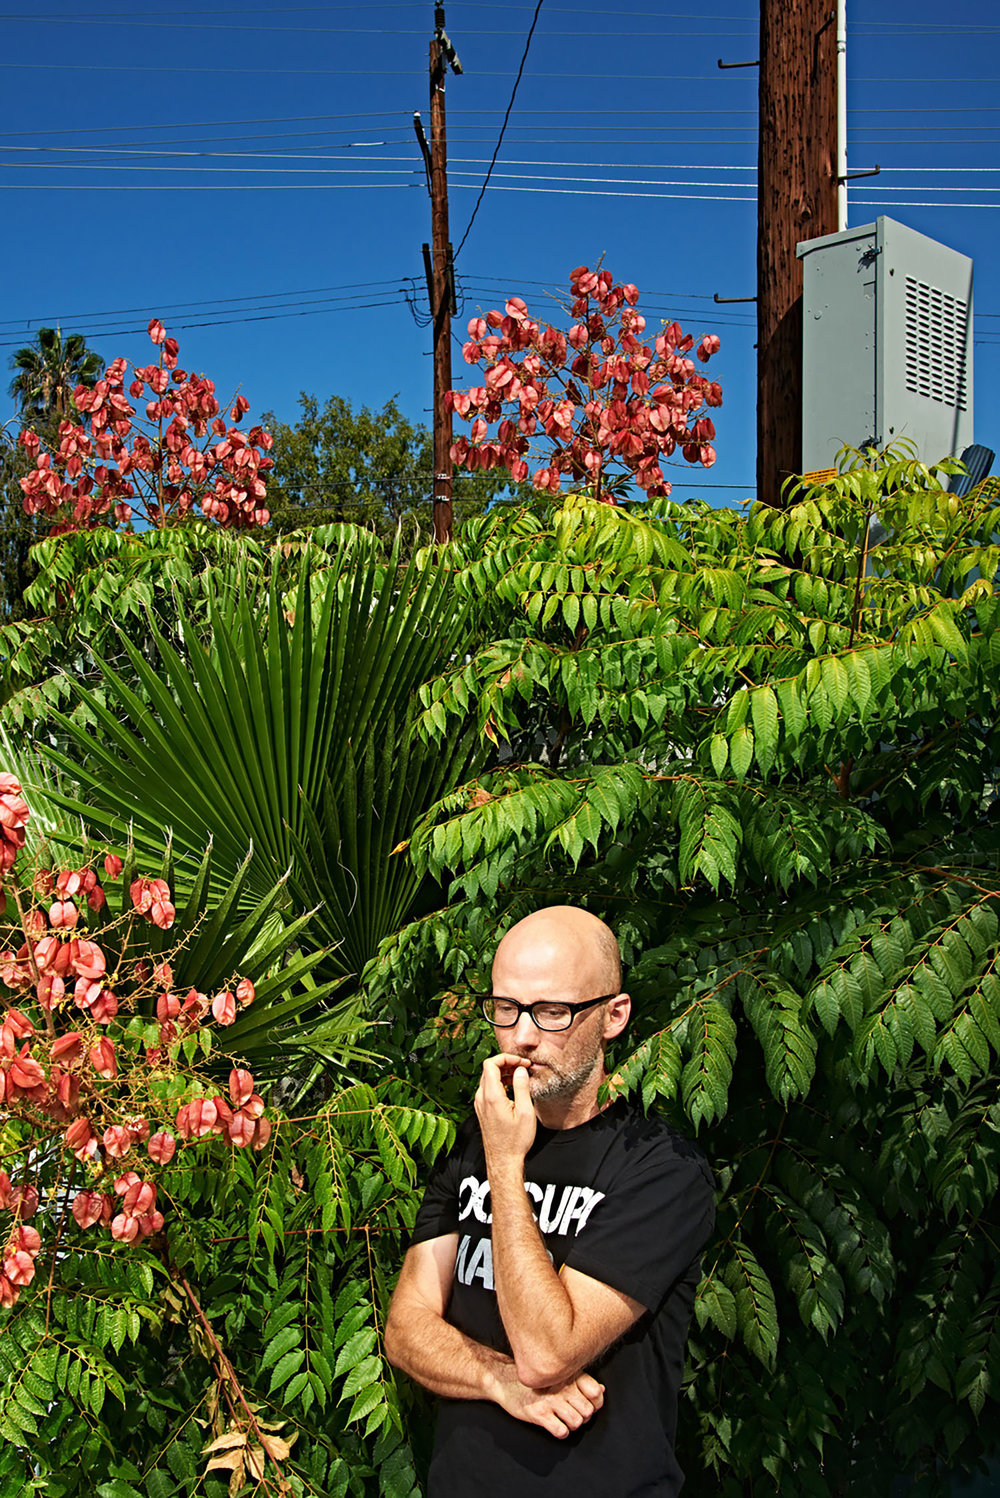 Moby, Musician, Los Angeles, California, 2015